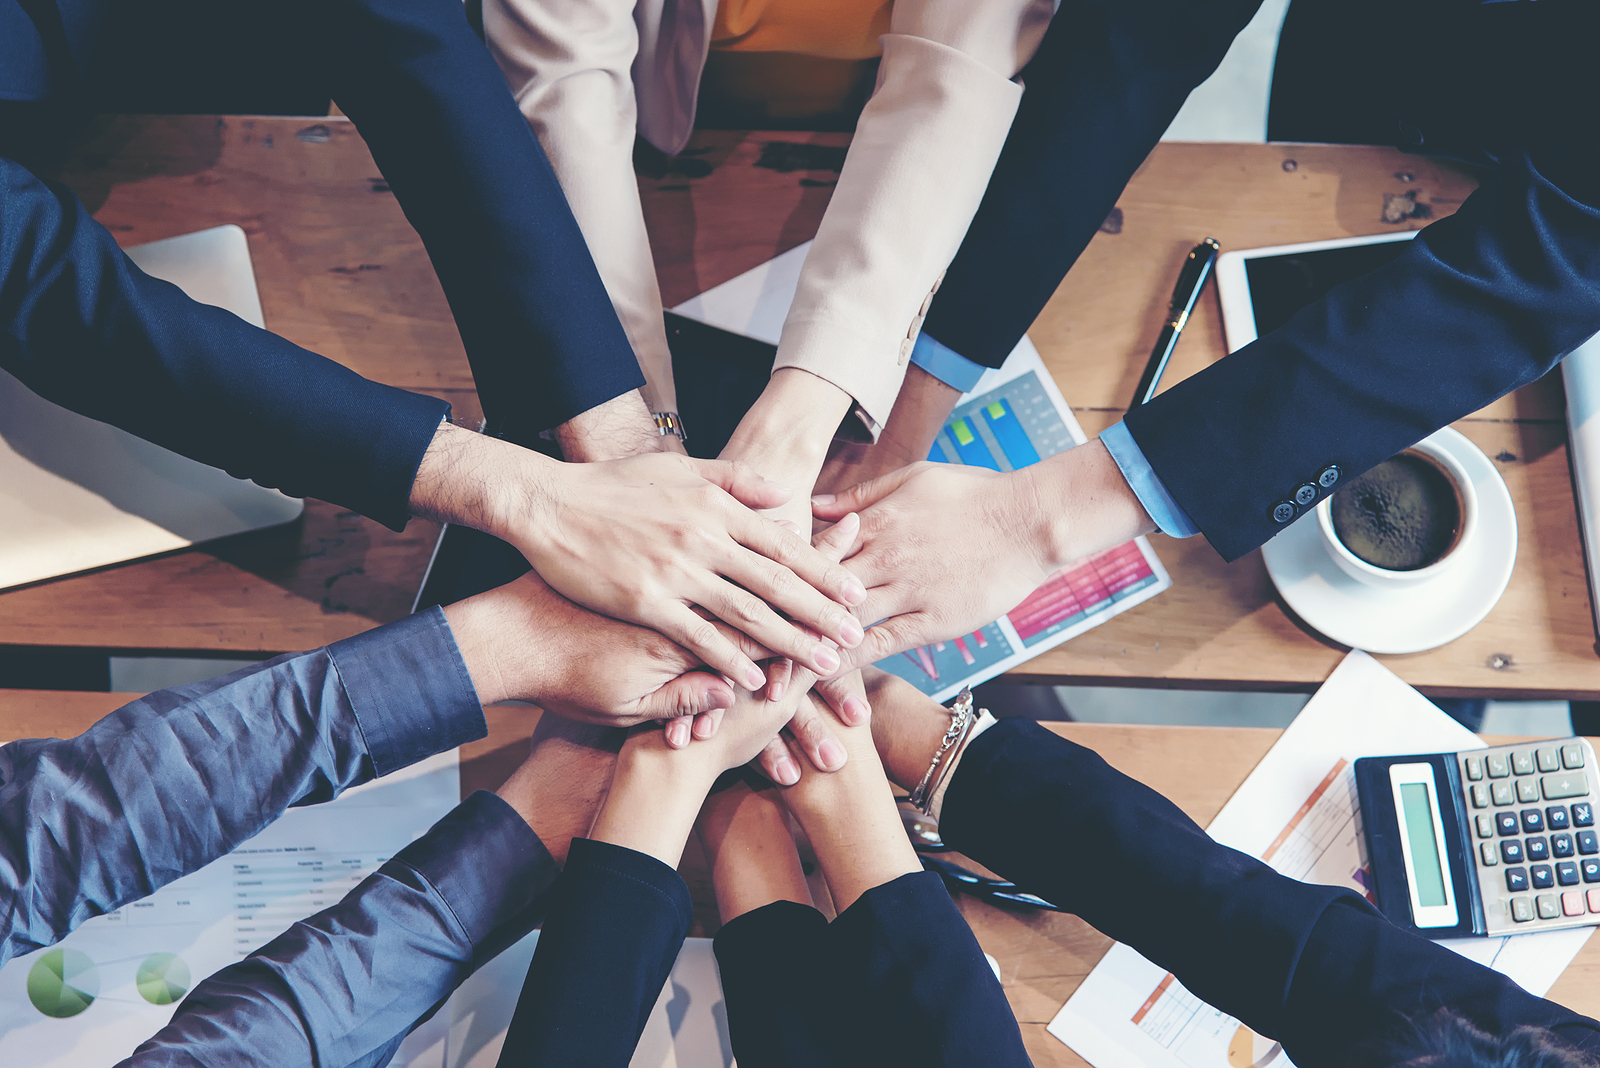 Several team member's hands and arms stacked on each other to show comradery.